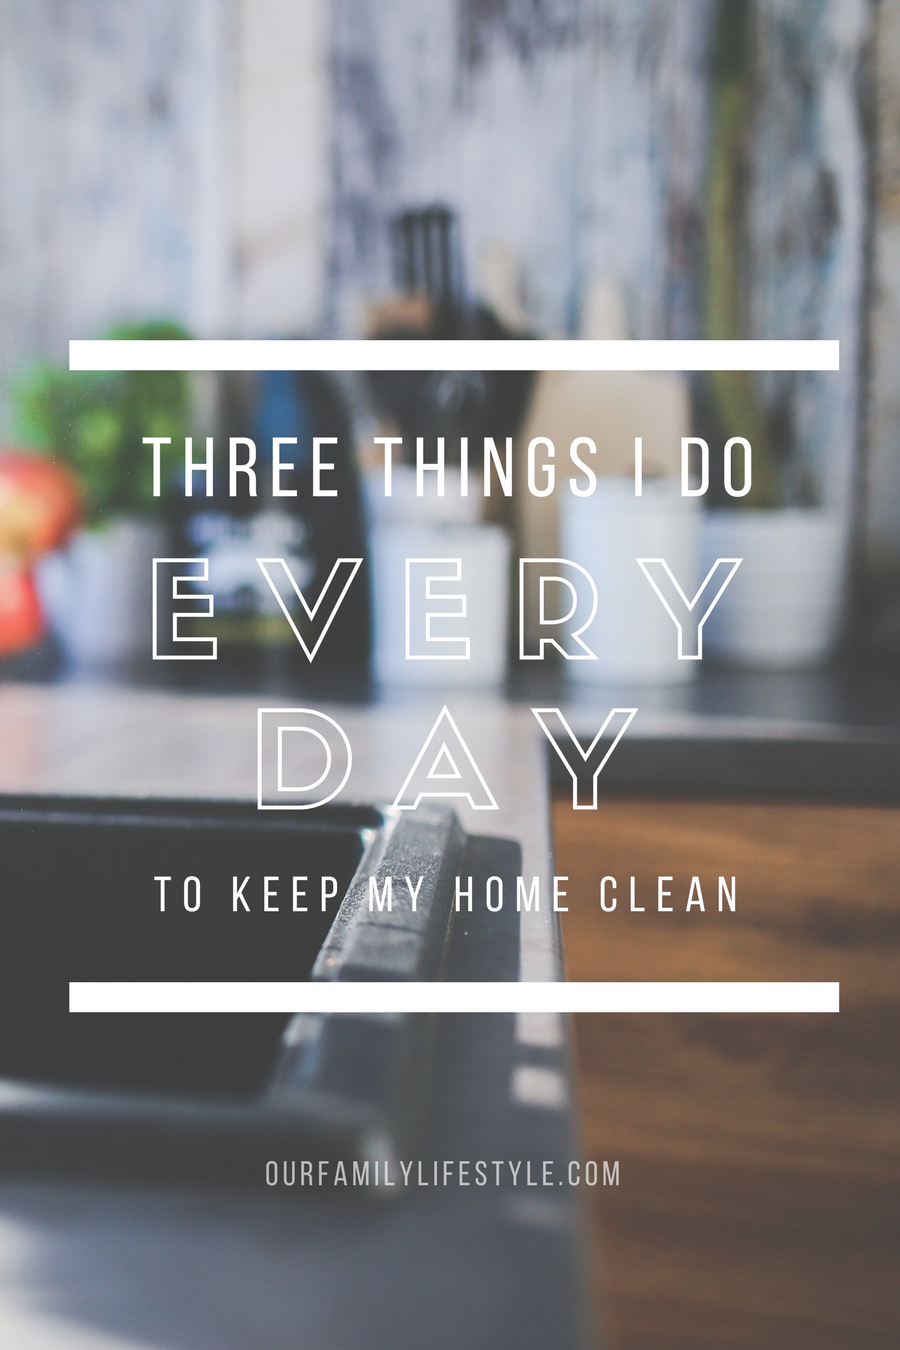 3 Things I Do Every Day to Keep My Home Clean